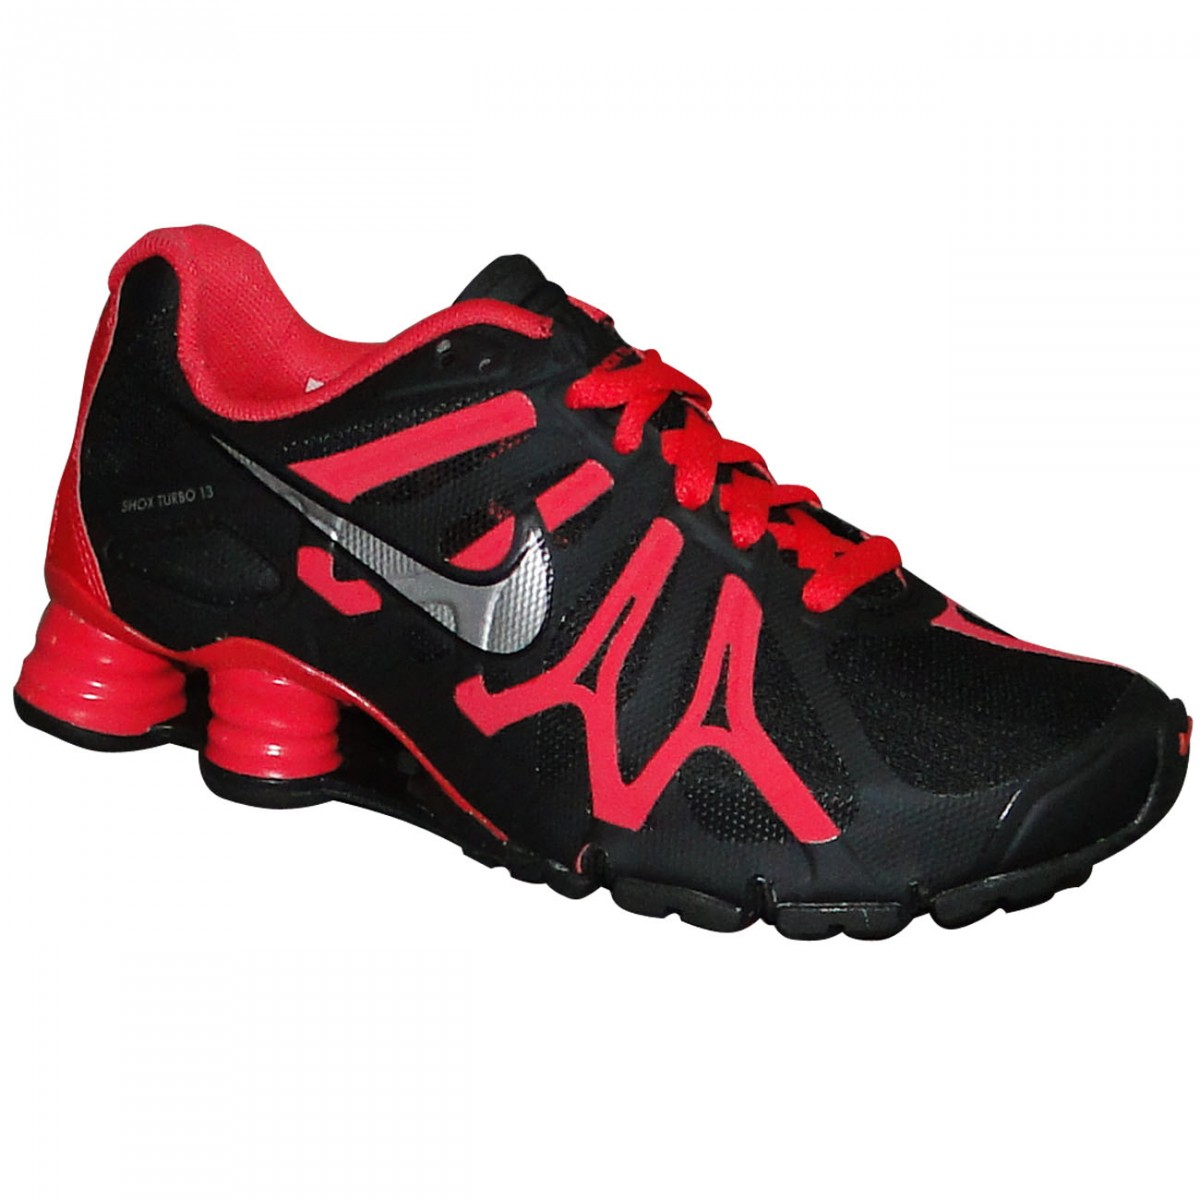 on sale 50dc5 472cd ... Shox Turbo + 13. ZOOM